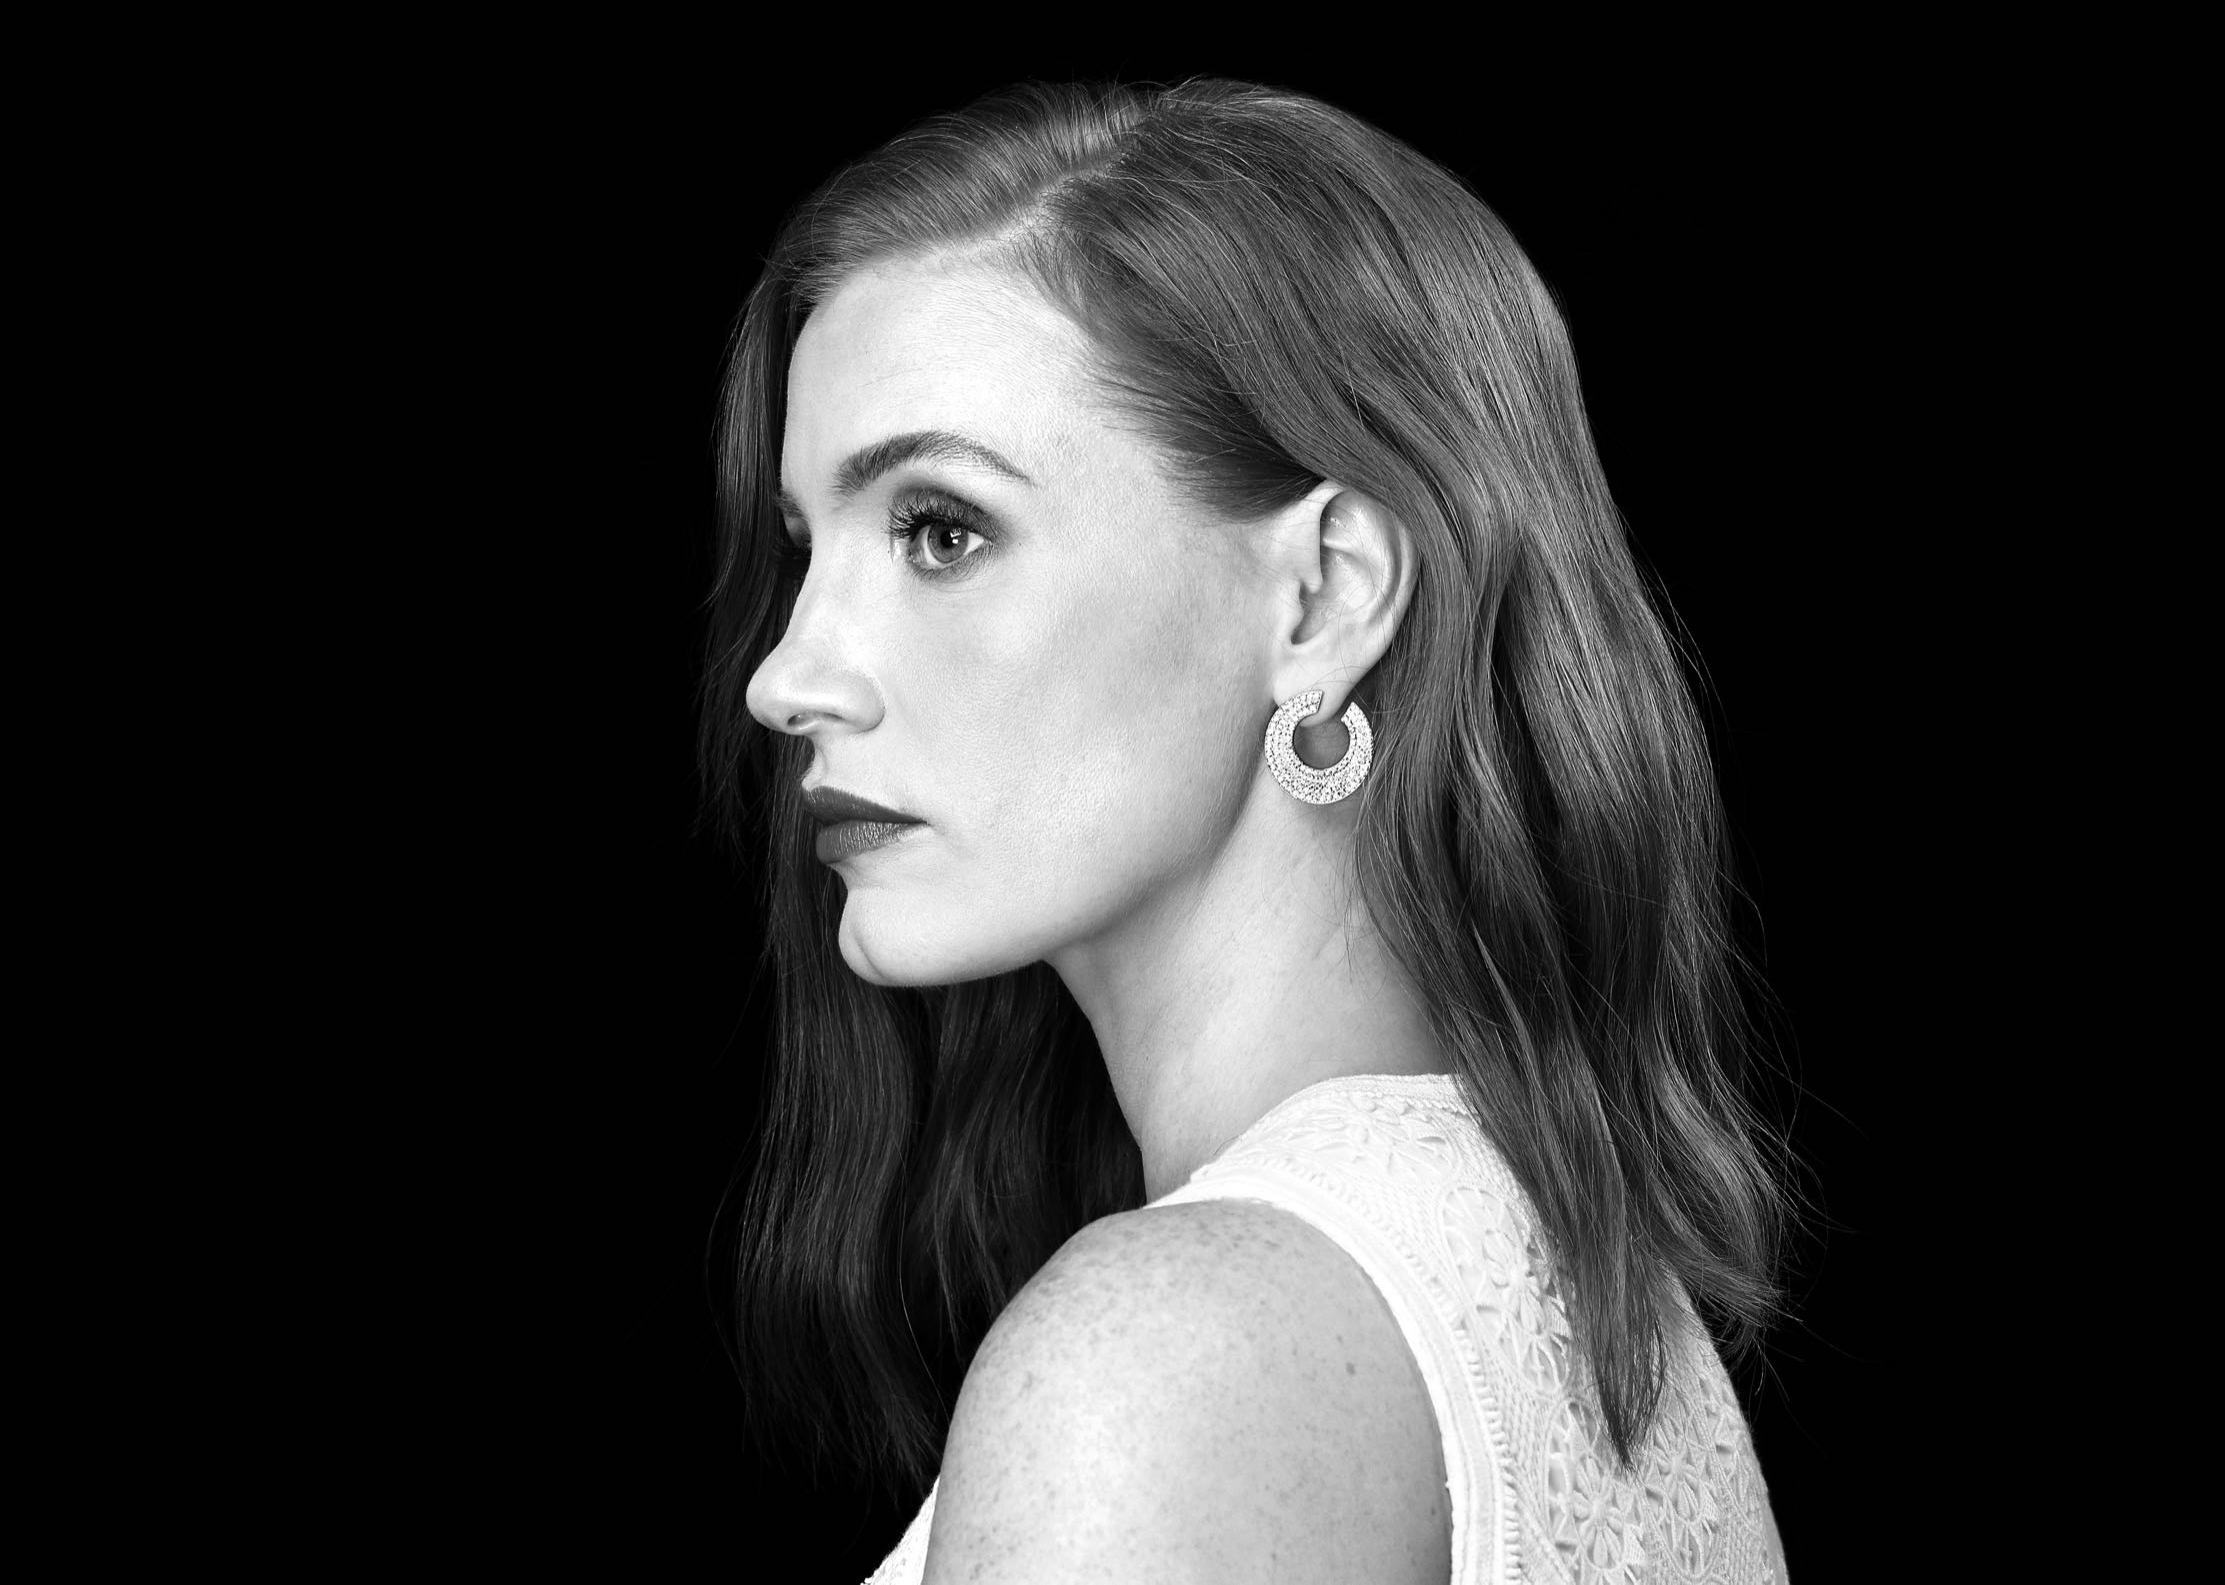 Jessica Chastain by Carolyn Cole for Los Angeles Times